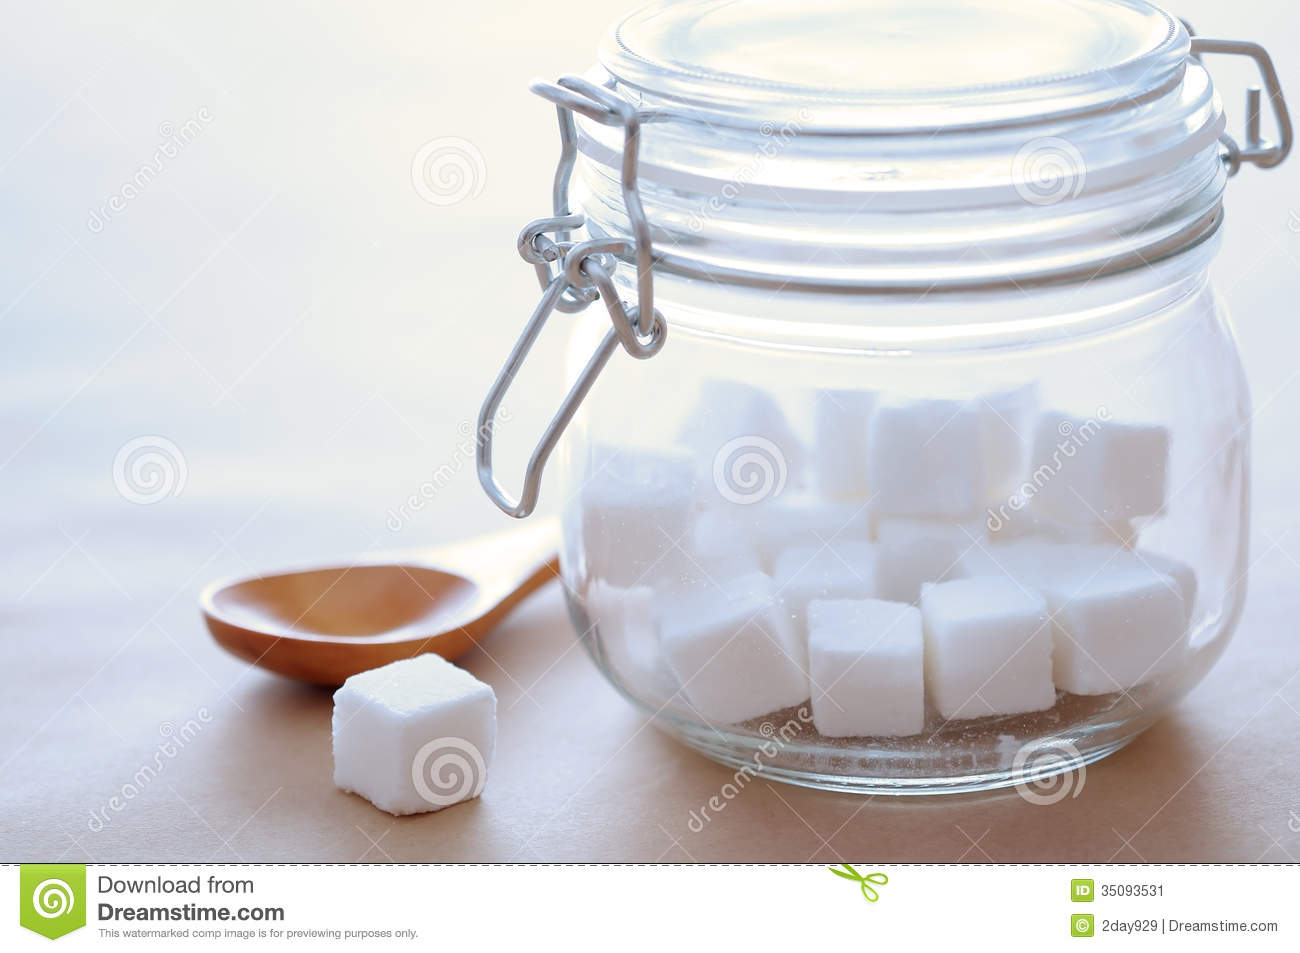 how to open sugar in the raw container